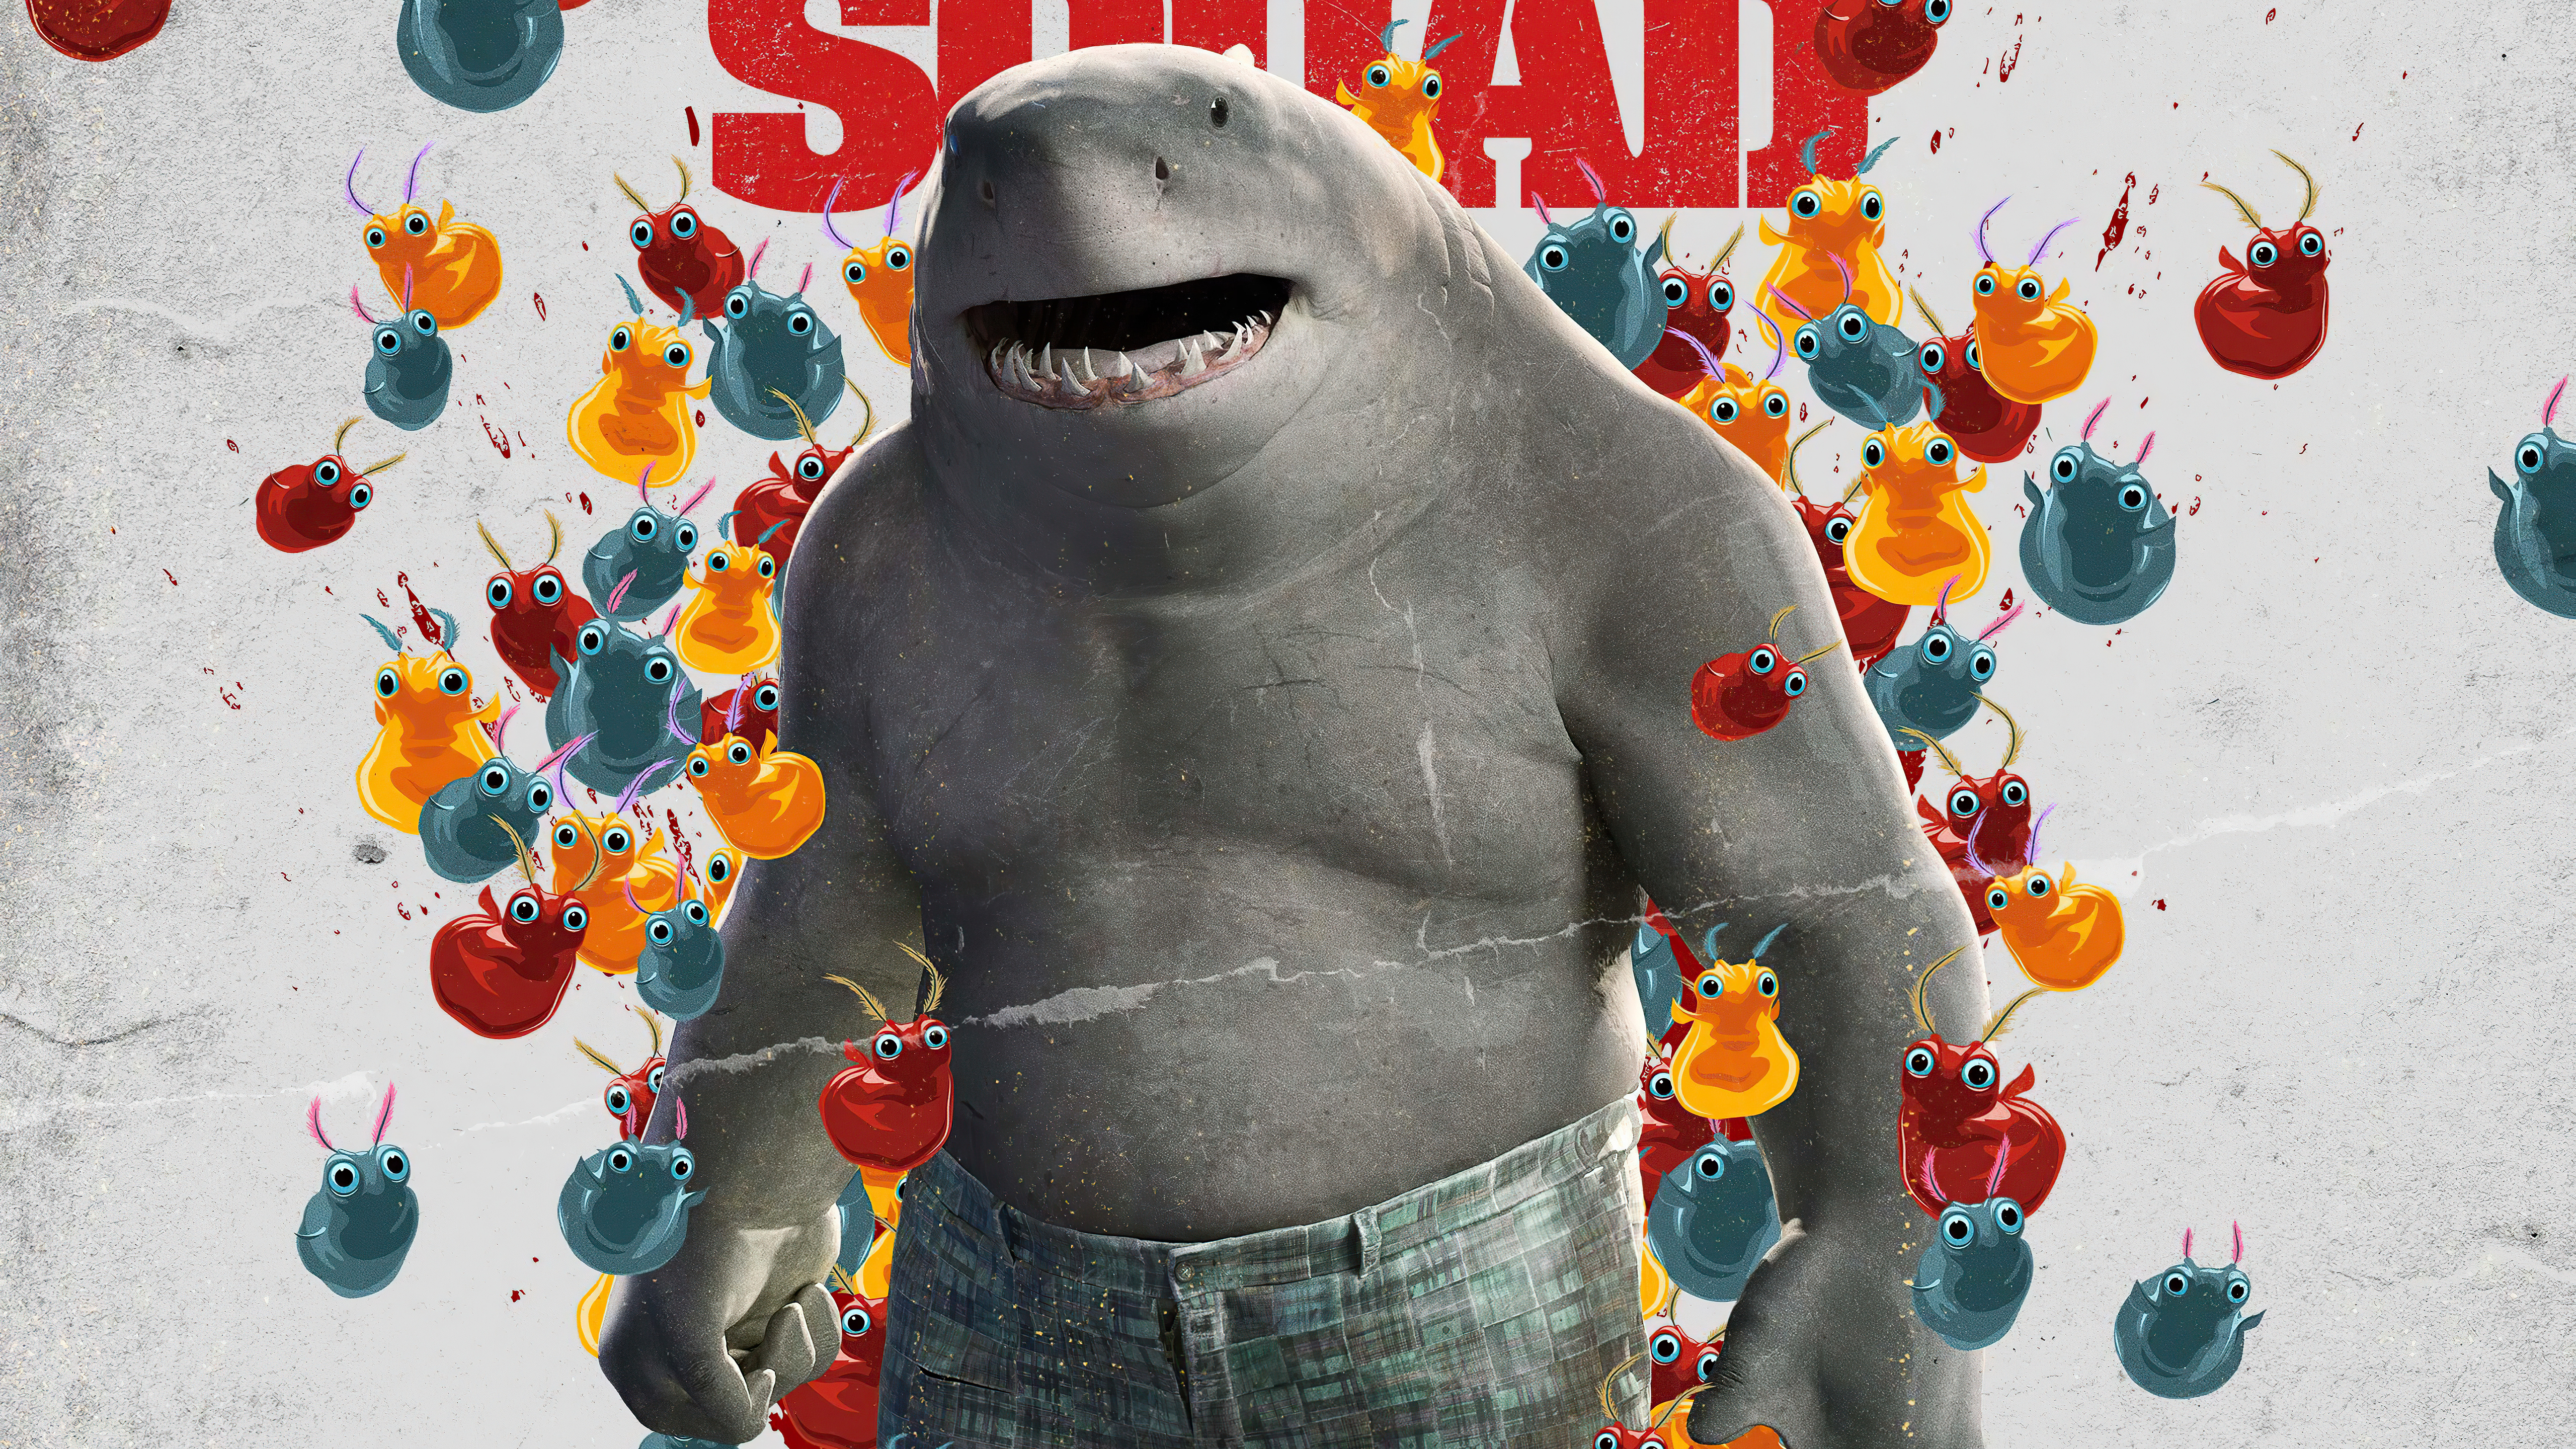 king shark the suicide squad 4k 1618166347 - King Shark The Suicide Squad 4k - King Shark The Suicide Squad 4k wallpapers